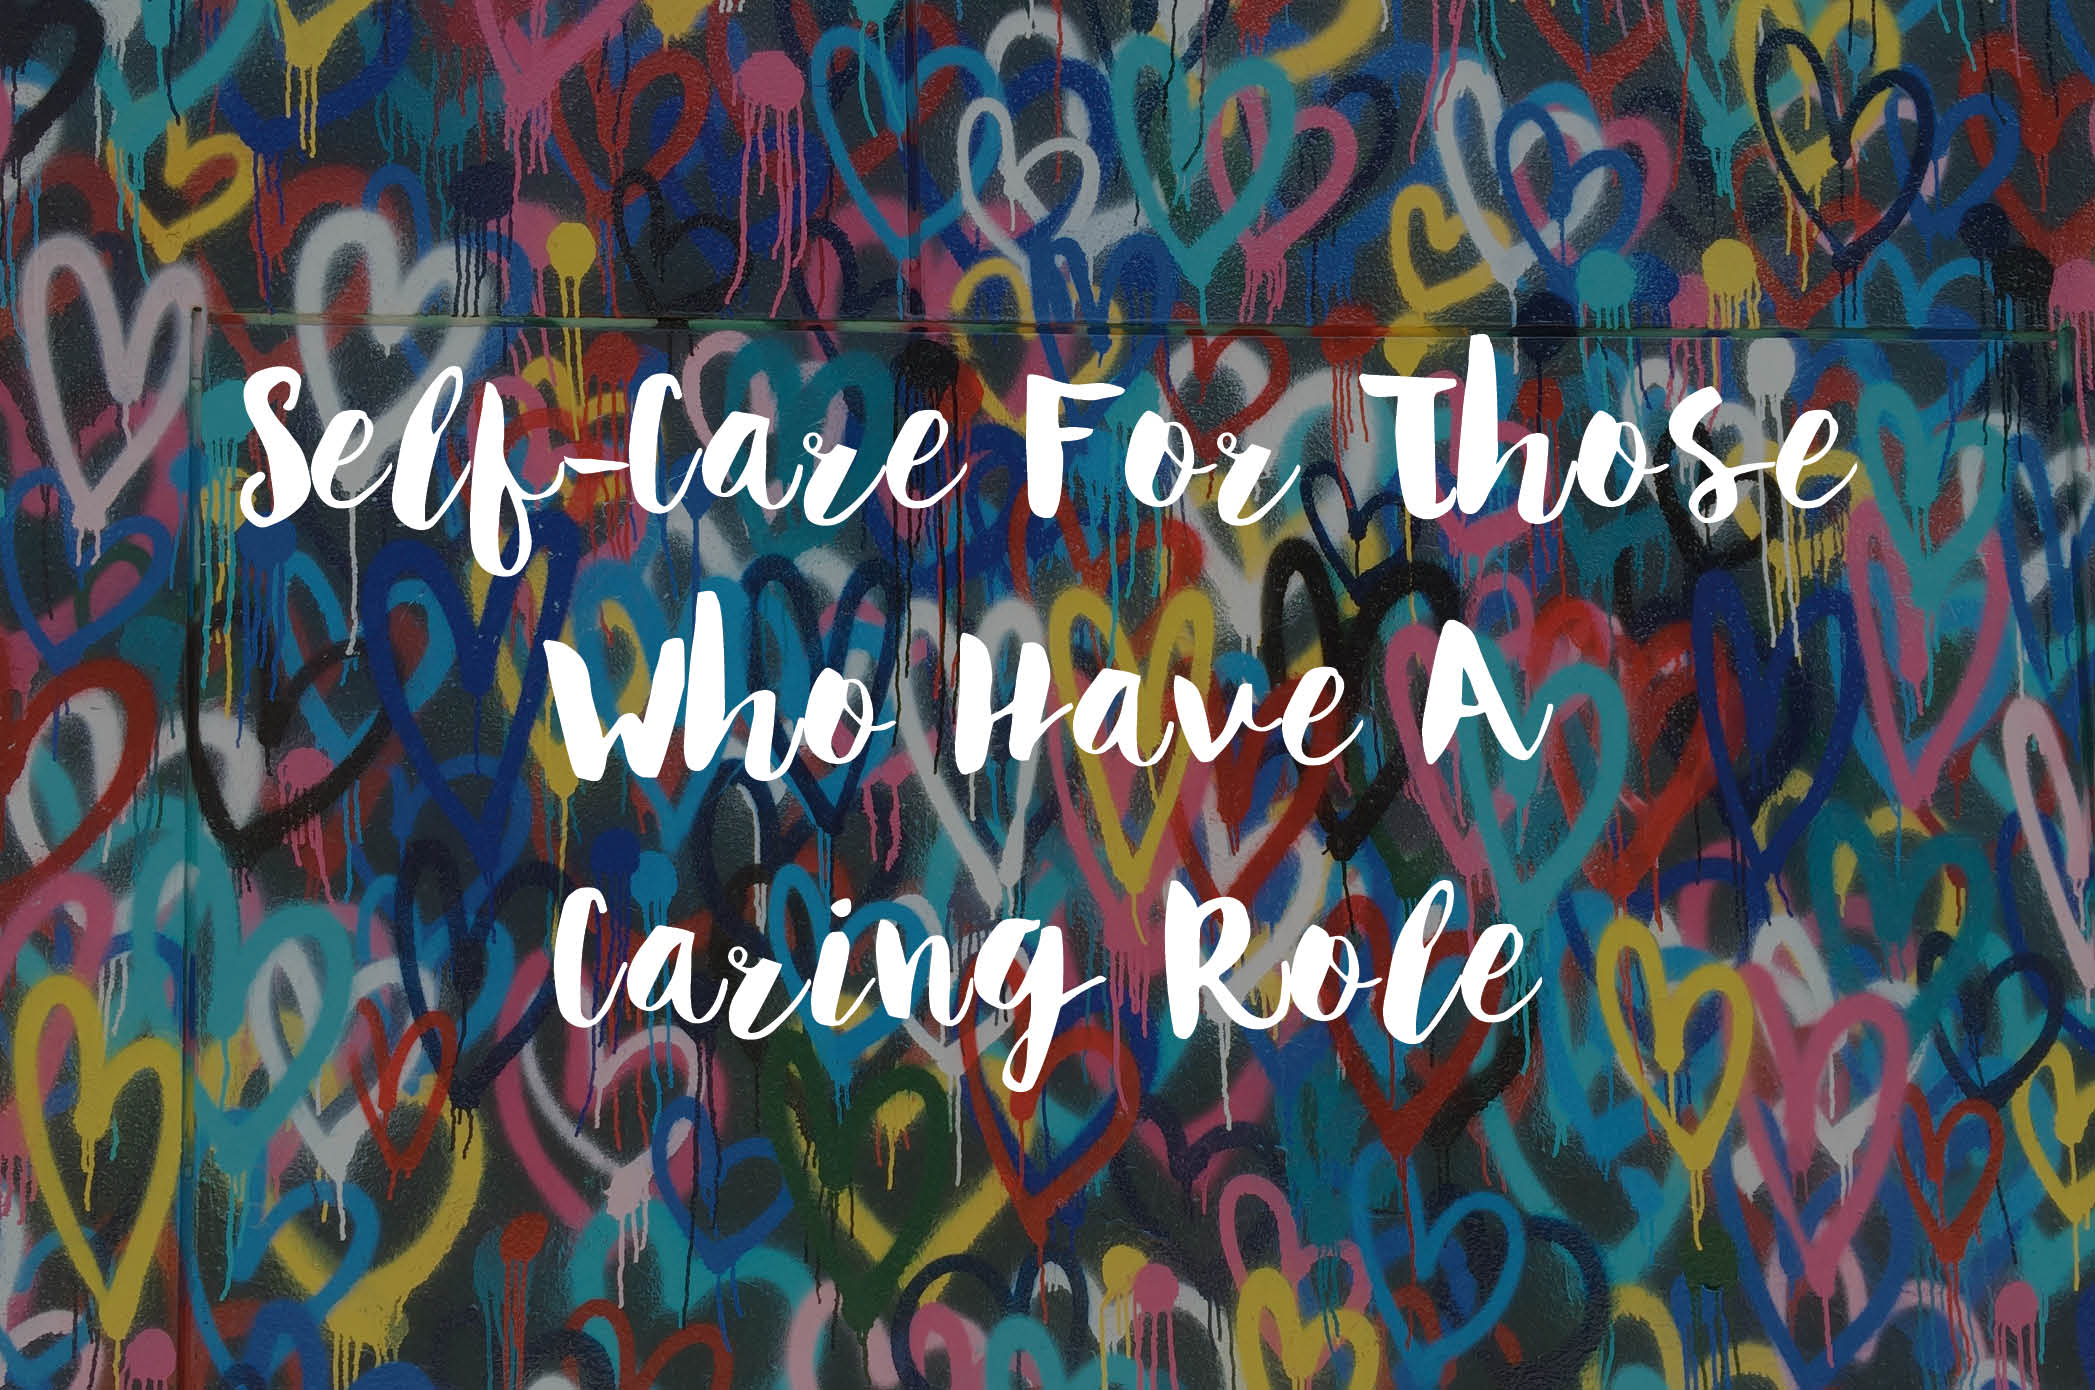 Self-care For Those Who Have A Caring Role